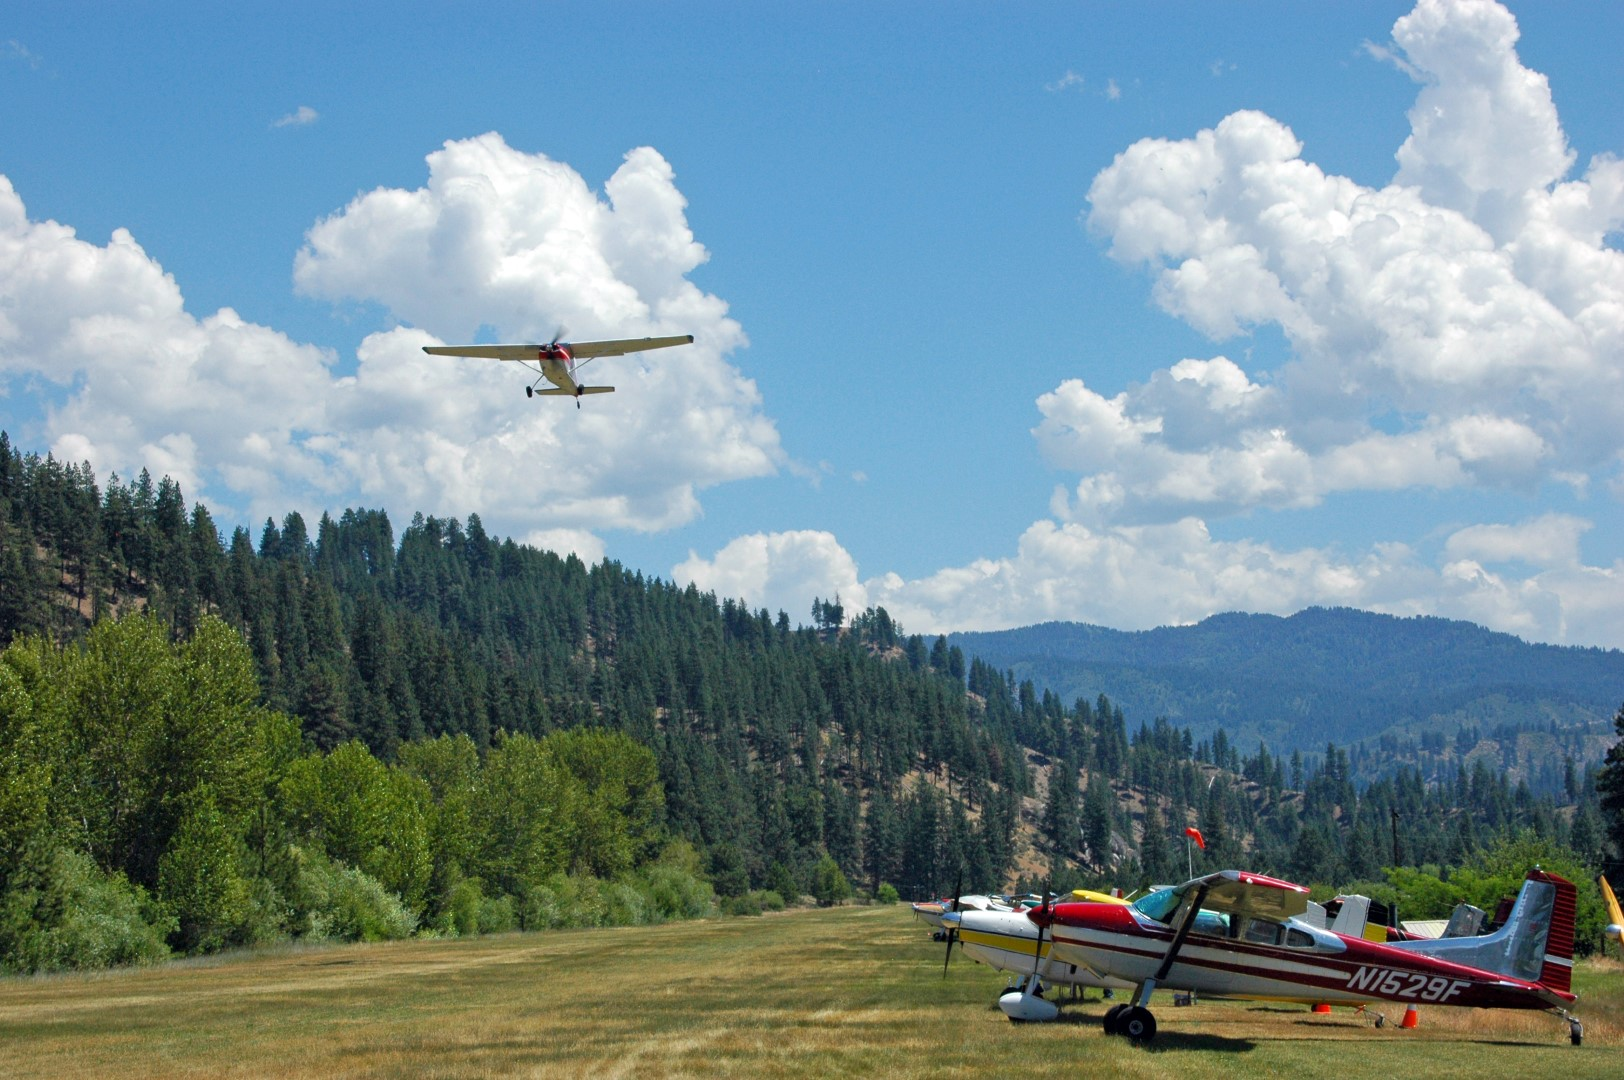 A Cessna Skywagon departs the Garden Valley, Idaho, airstrip during the International 180/185 Club's fly-in, held there each July. Photo by Crista Worthy.